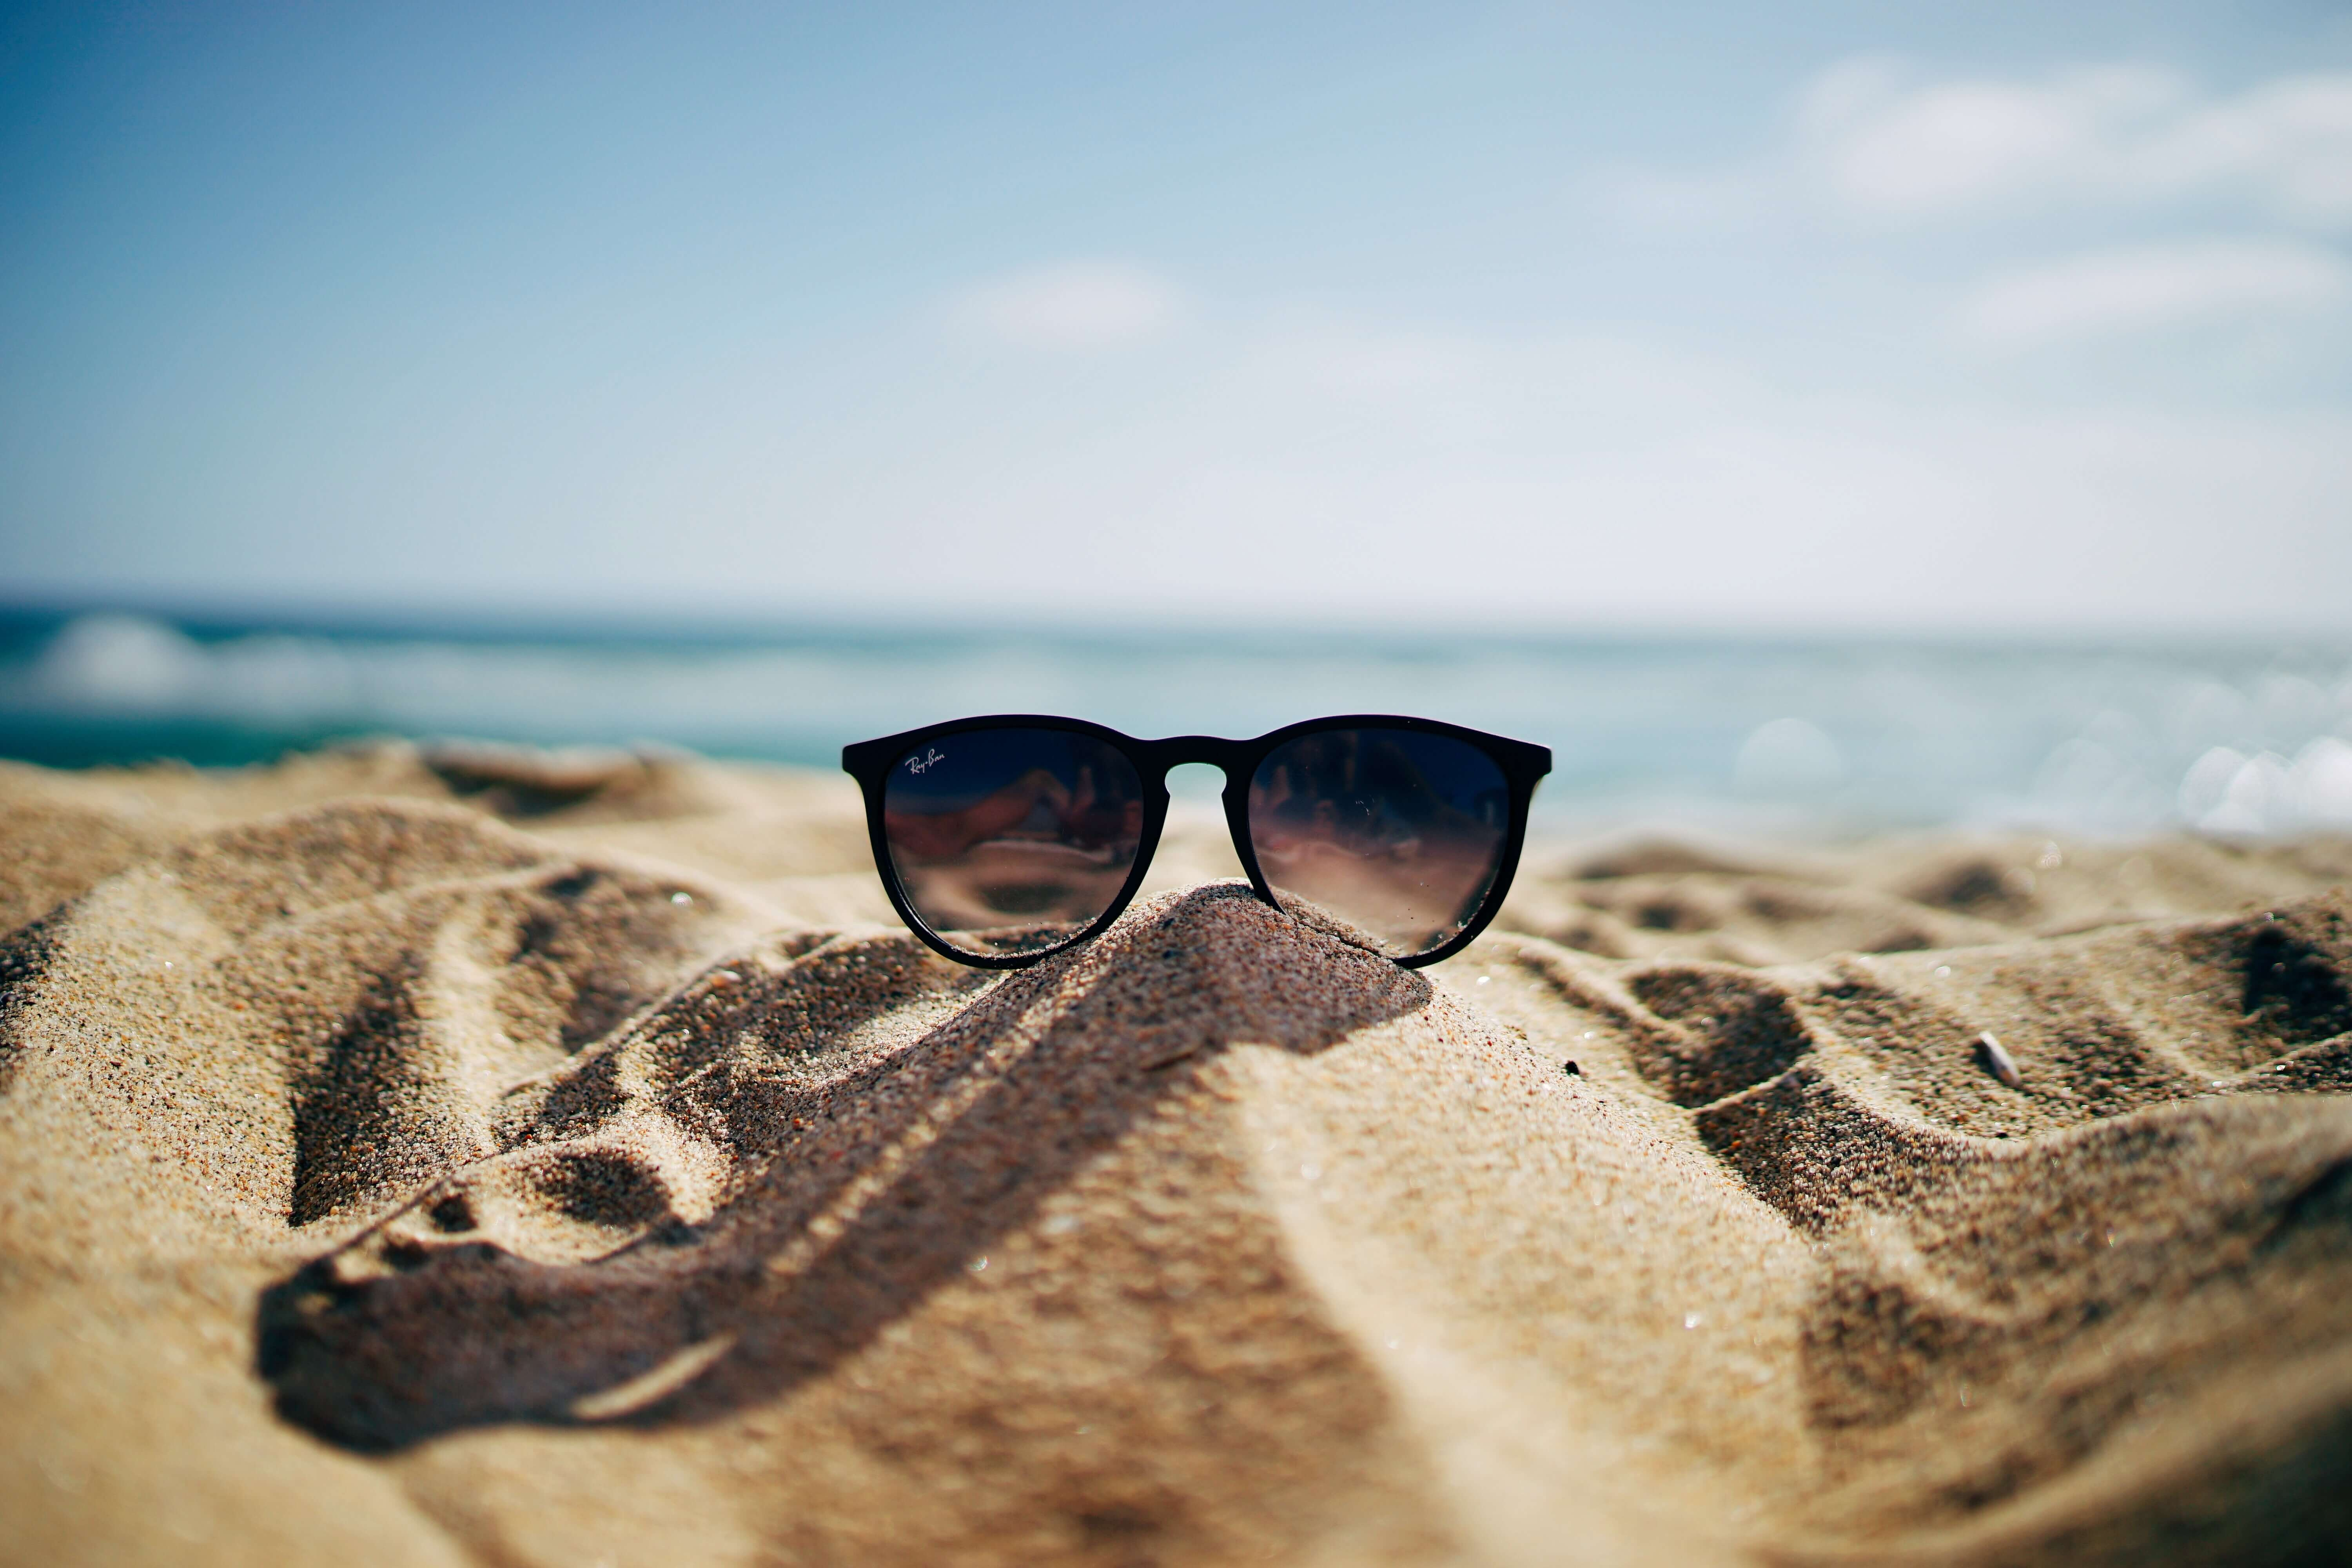 Learn summer beach vocabulary in another language